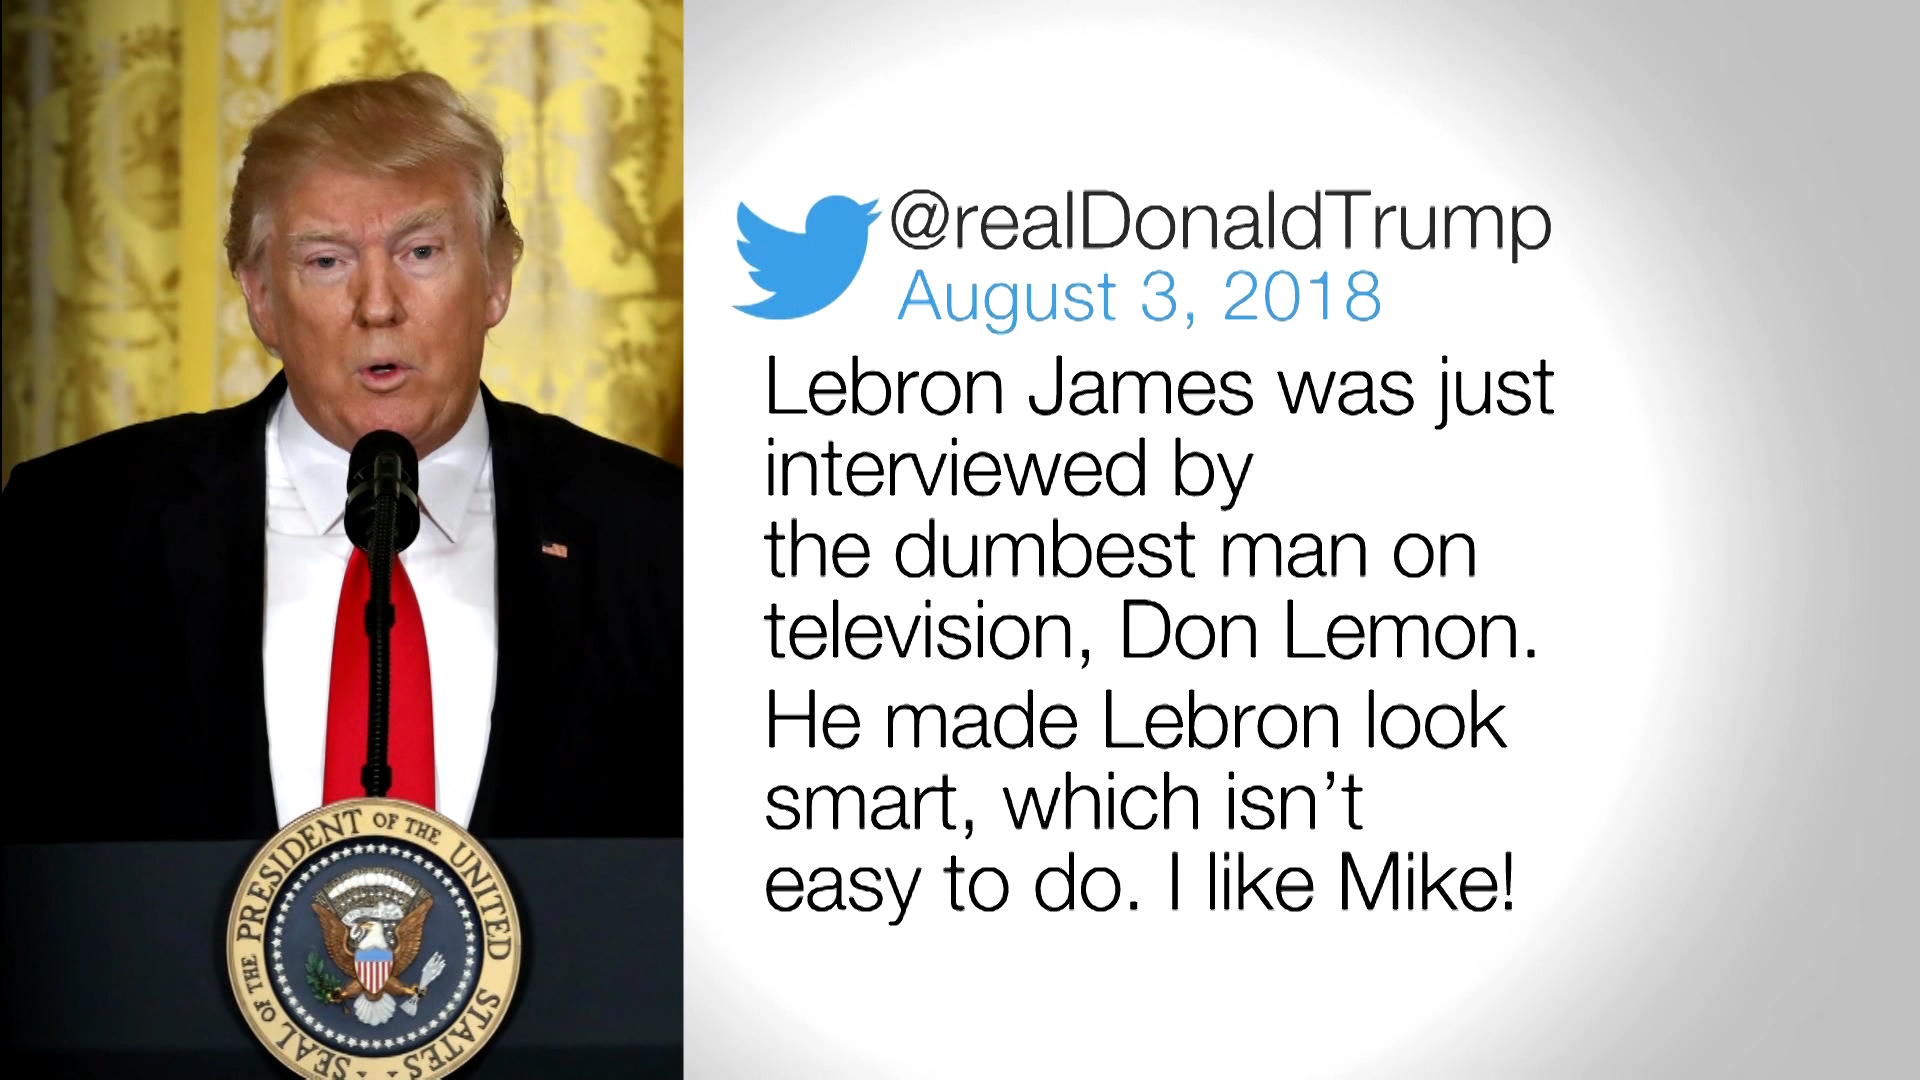 ac6303daa0f First Lady Melania Trump praises LeBron James after Donald Trump insults  him